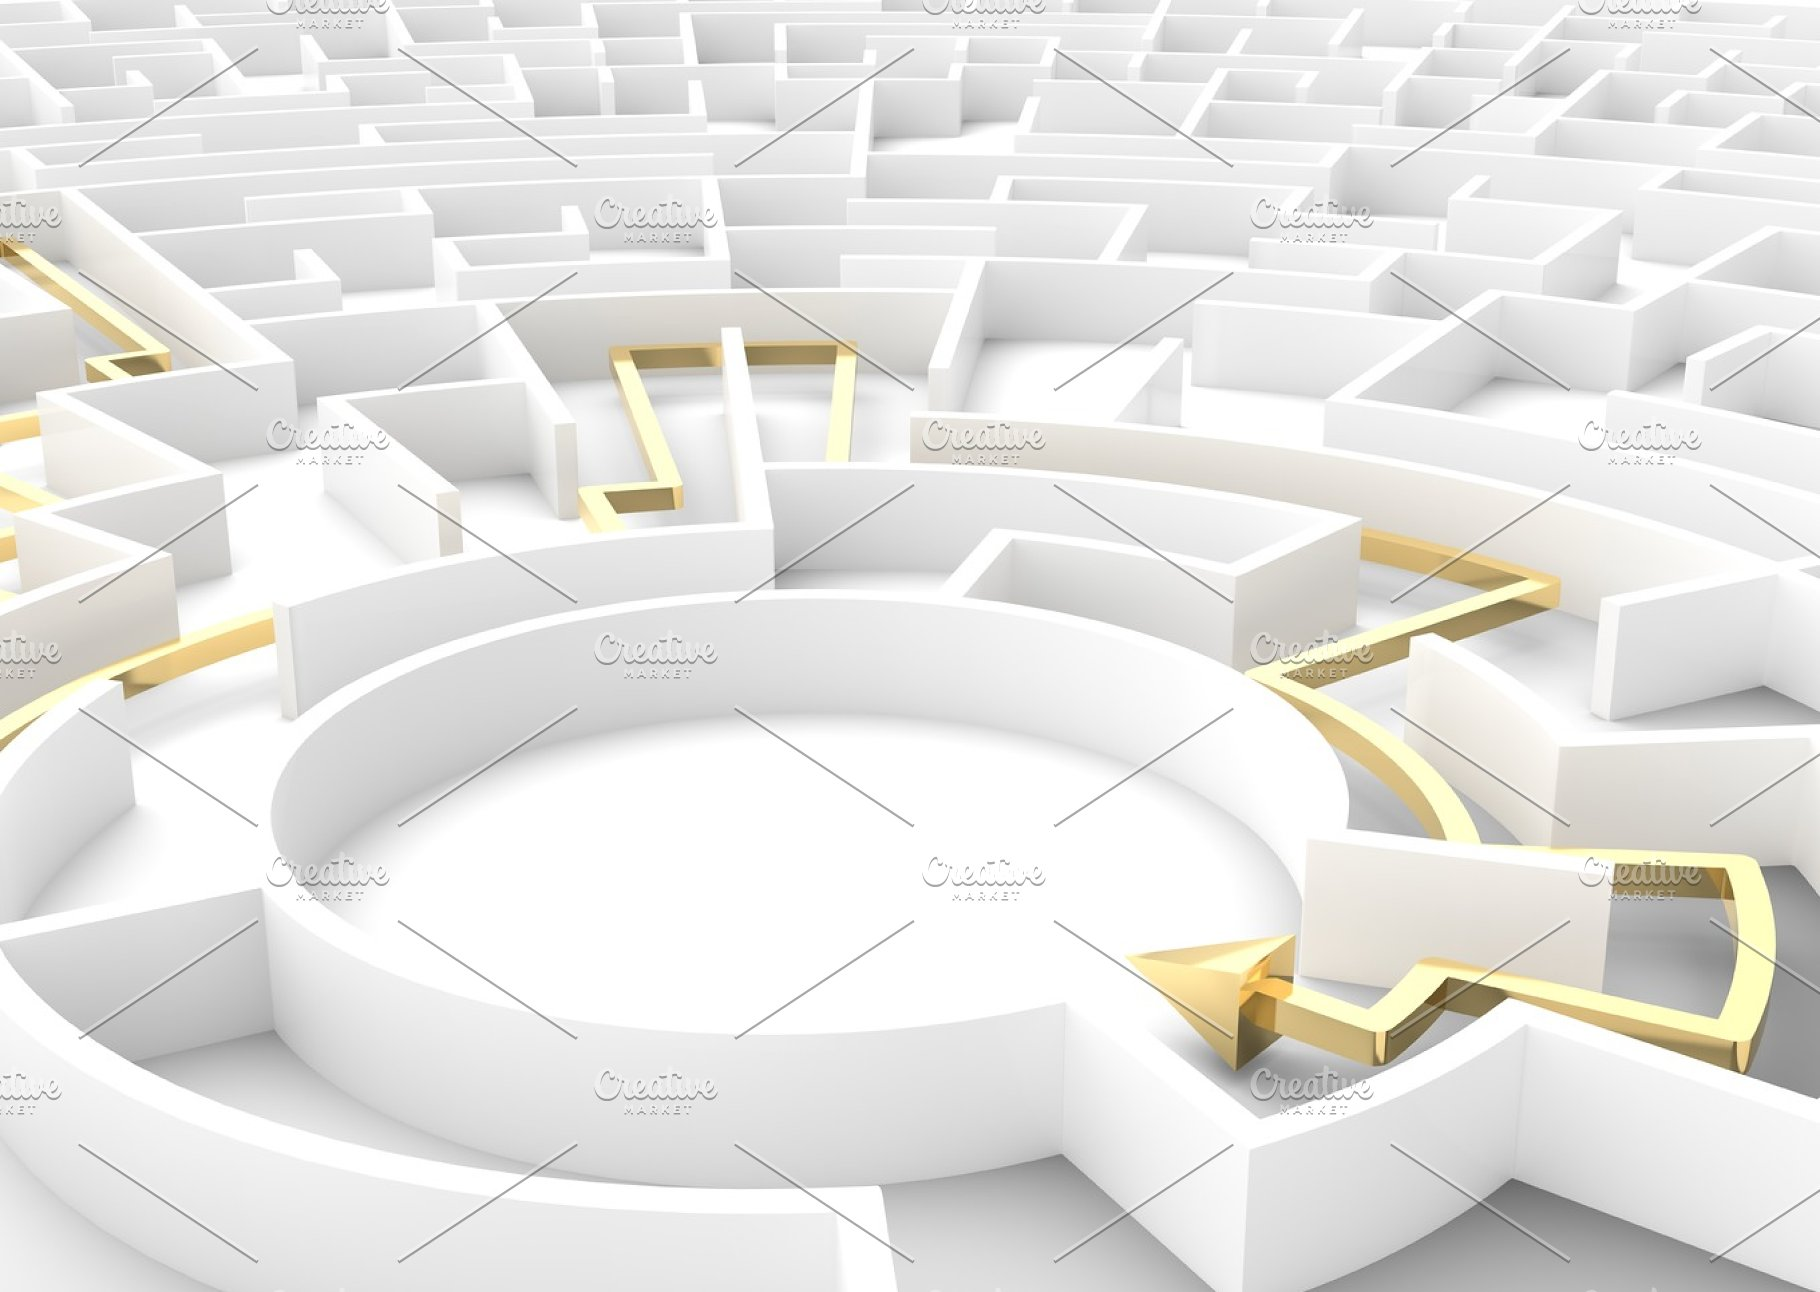 Gold arrow going through maze showing a solution  Business strategy  concepts